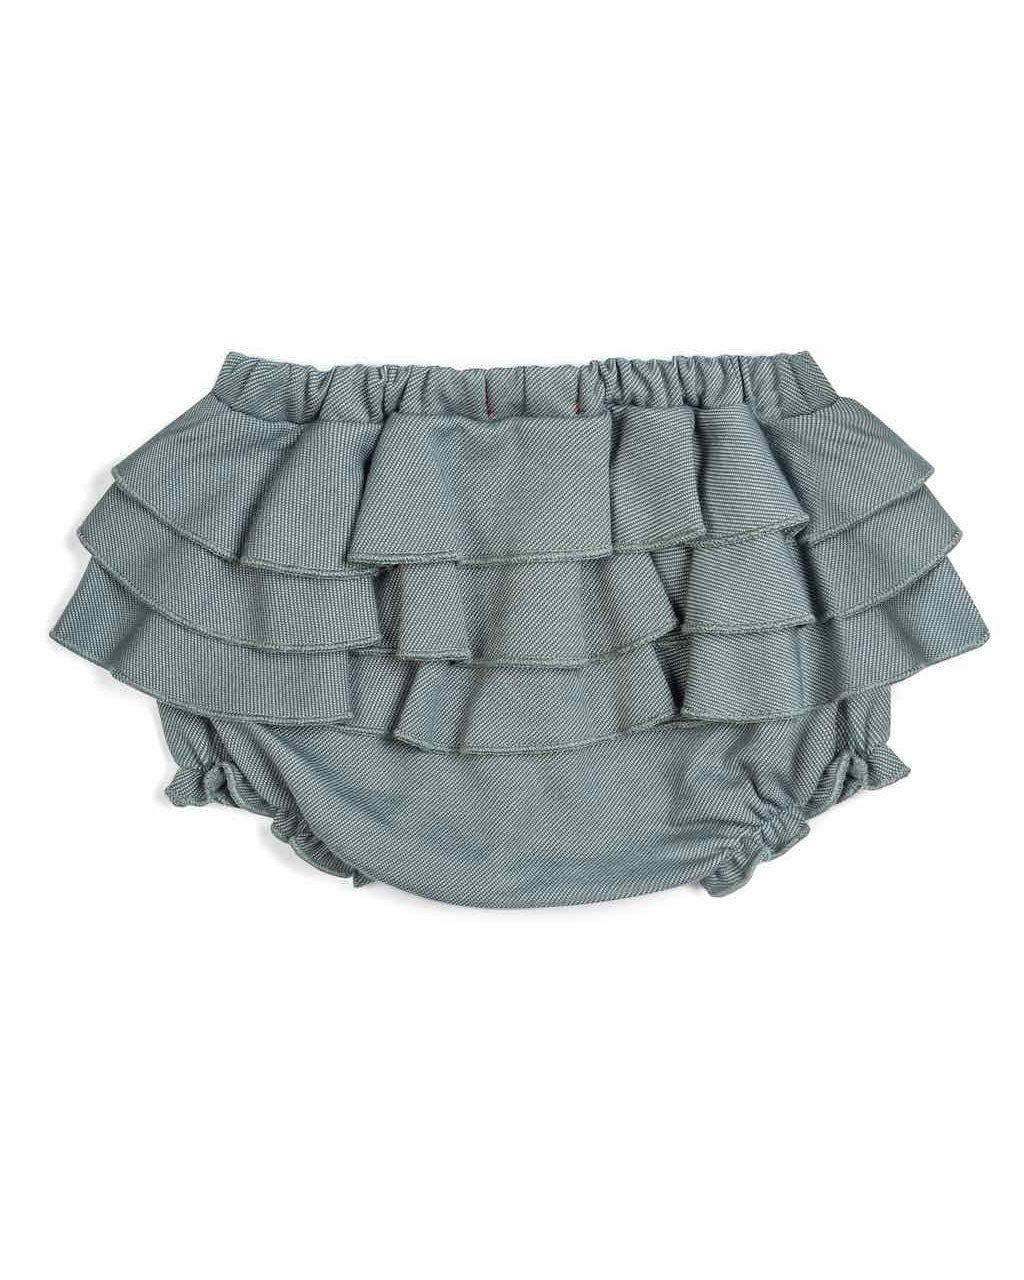 Milkbarn Ruffled Bloomer Shorts